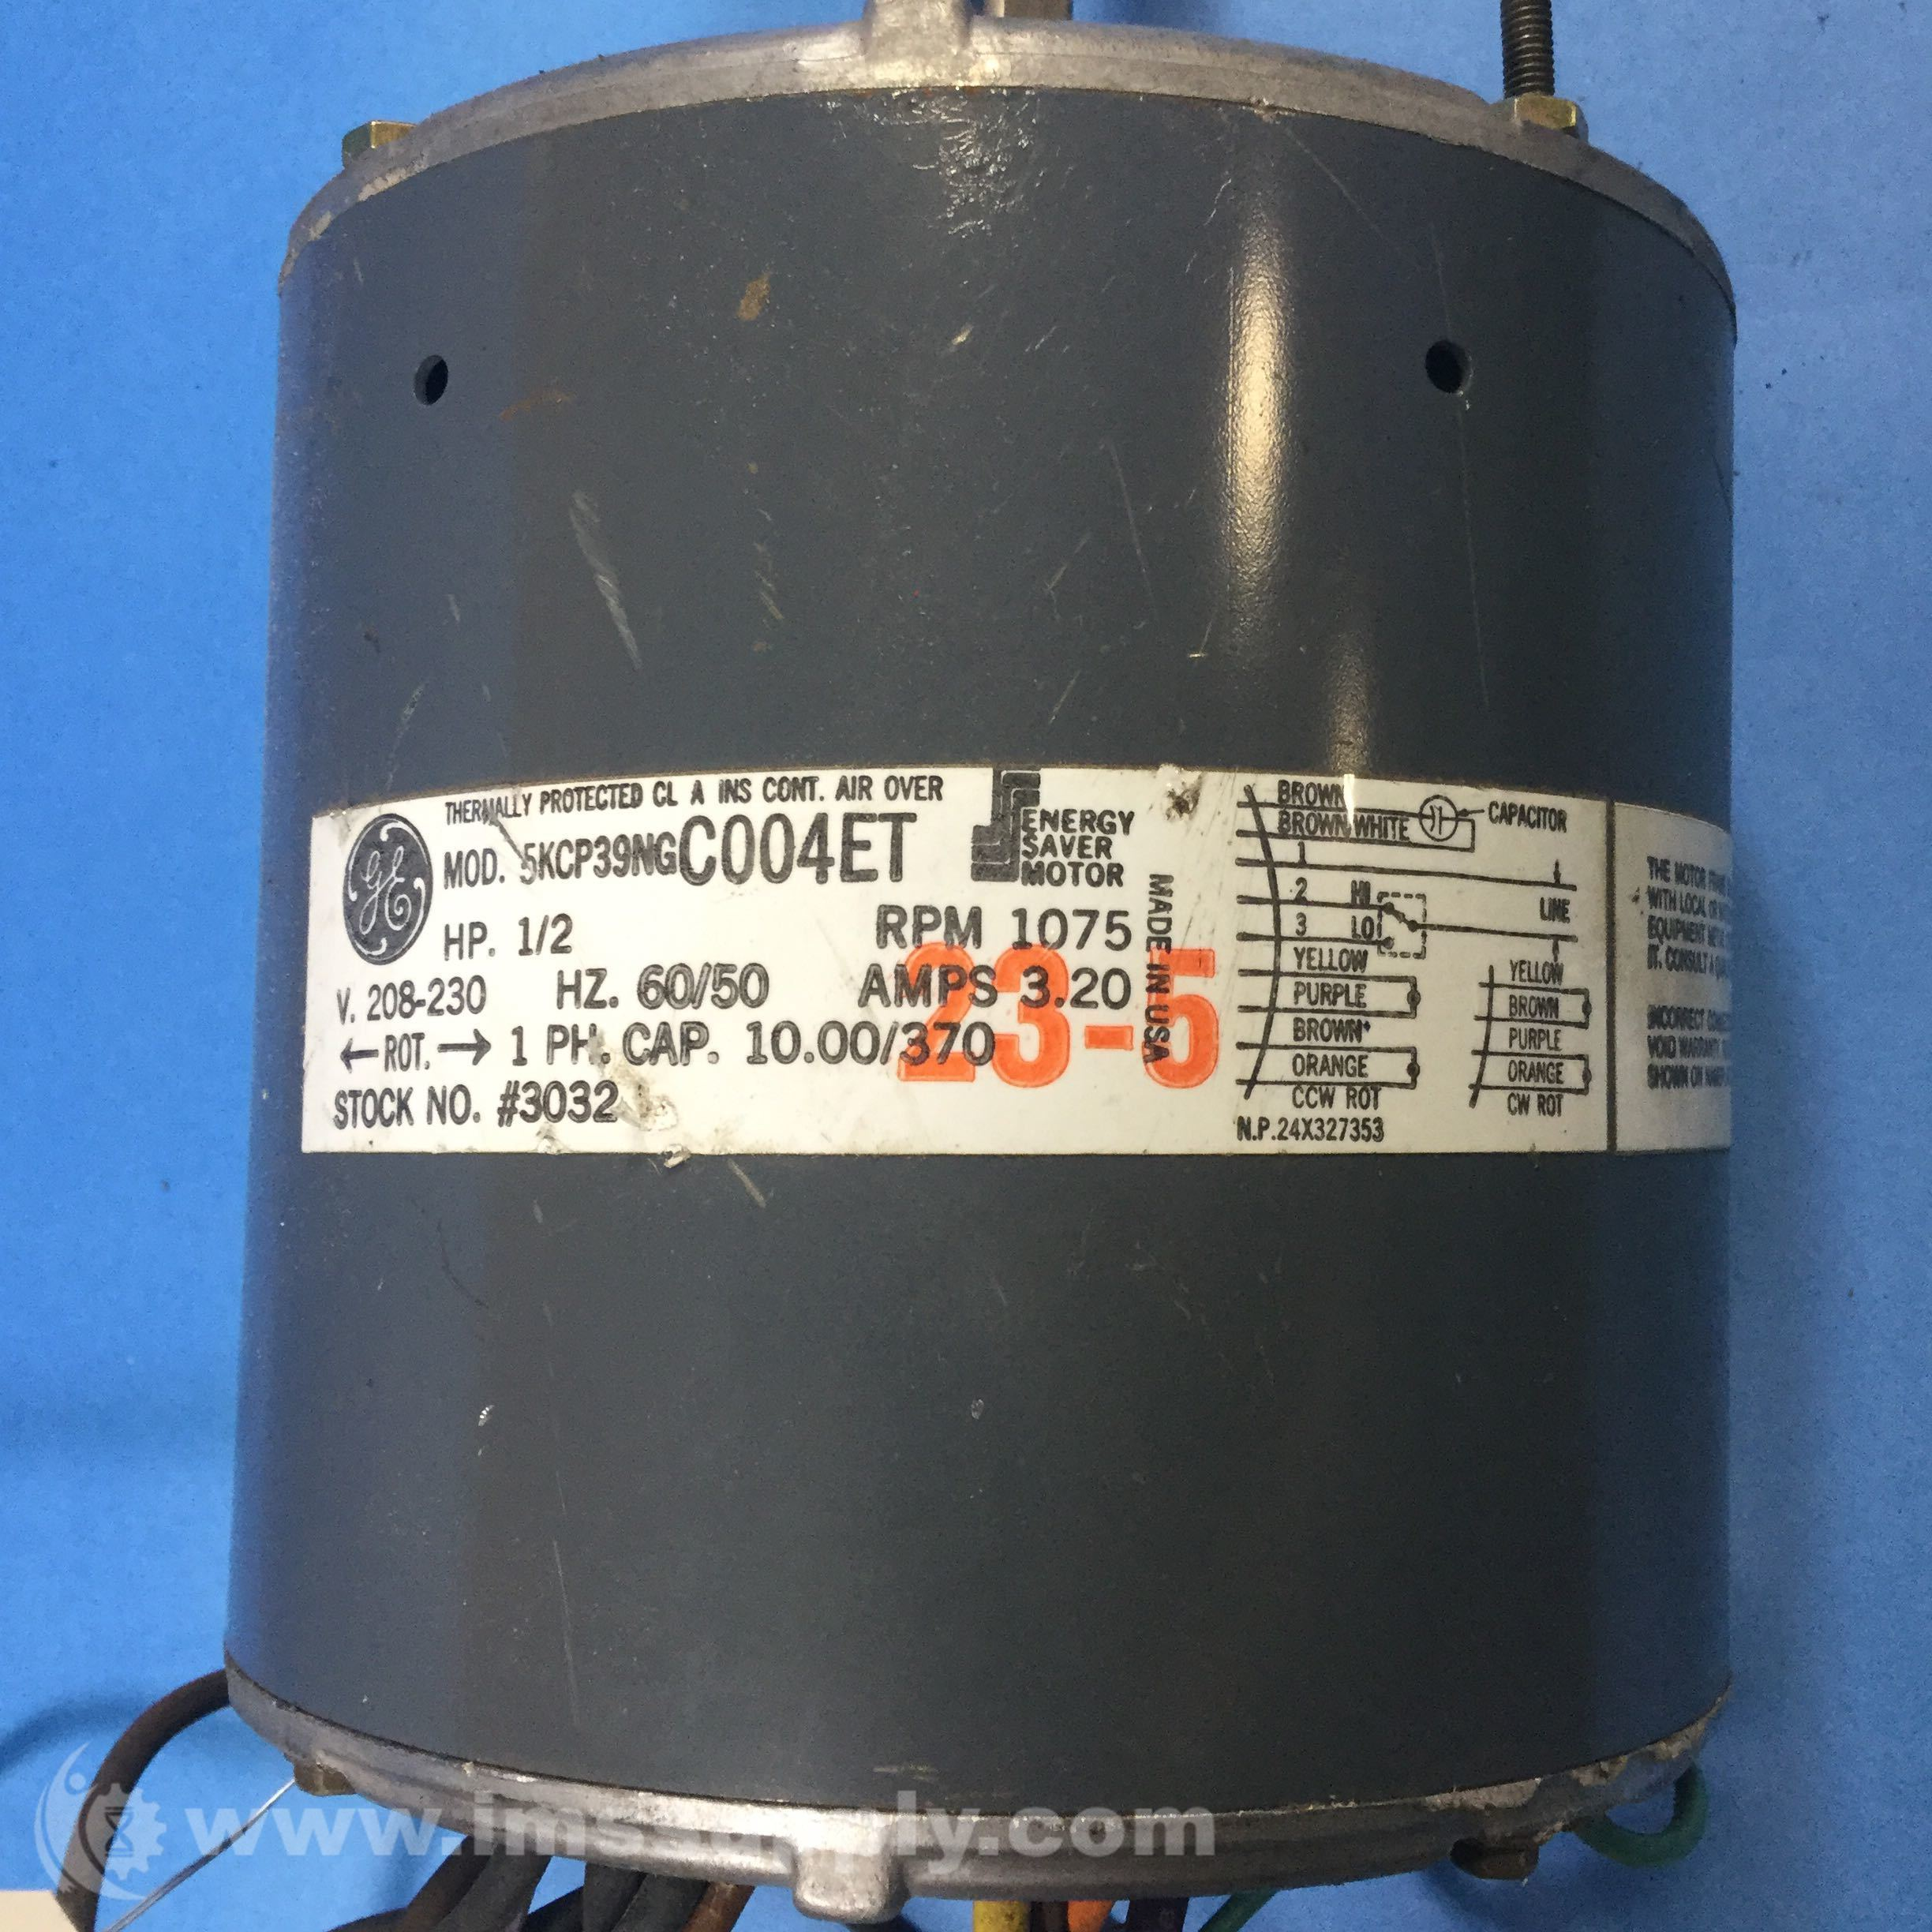 General Electric 5kcp39ngc004et 1 2hp 1075rpm 1ph Motor